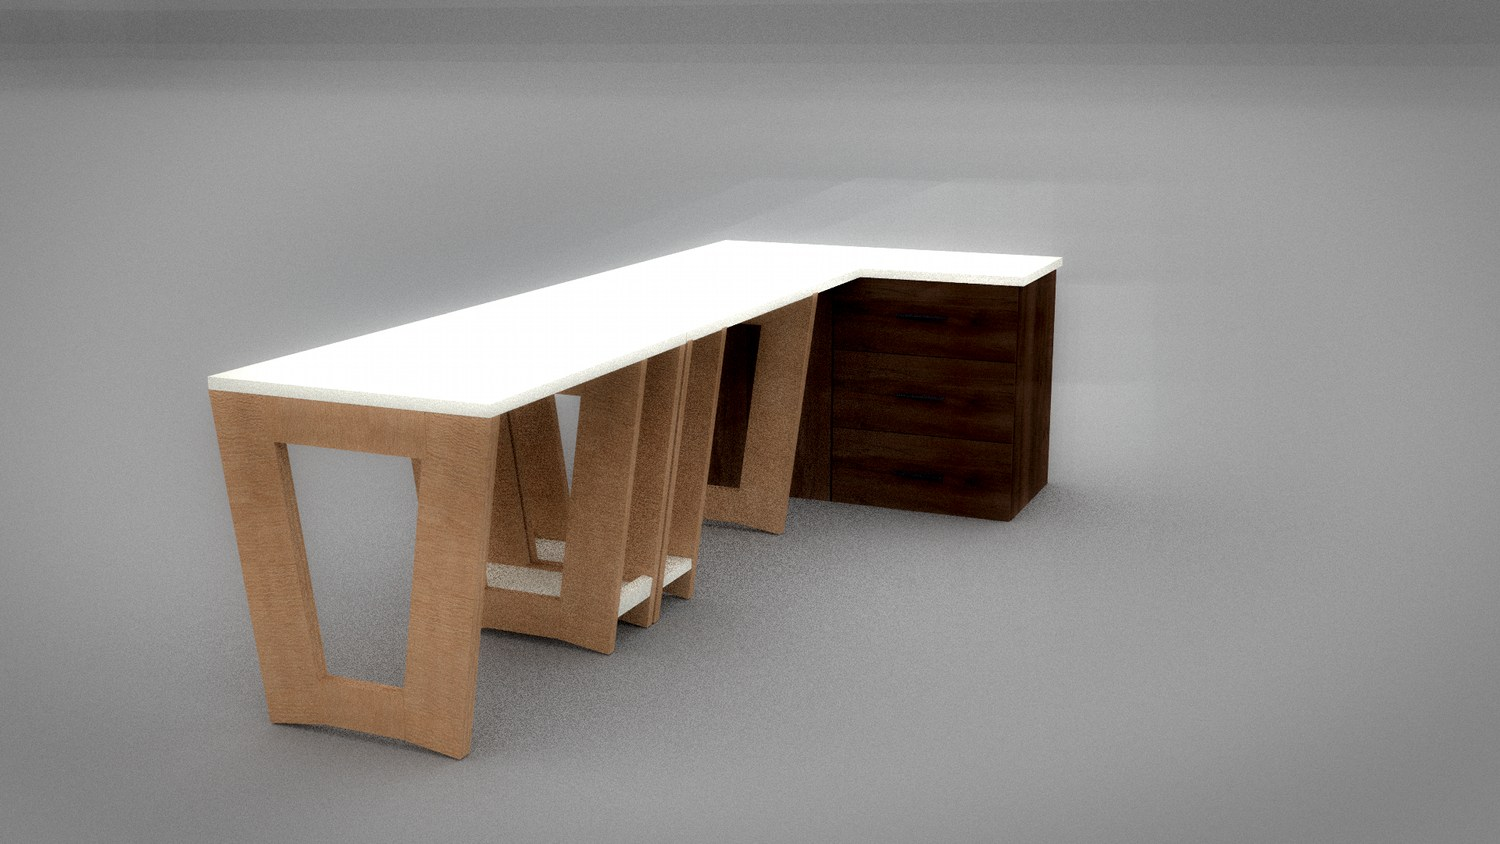 School table vizualization with oc and Blender